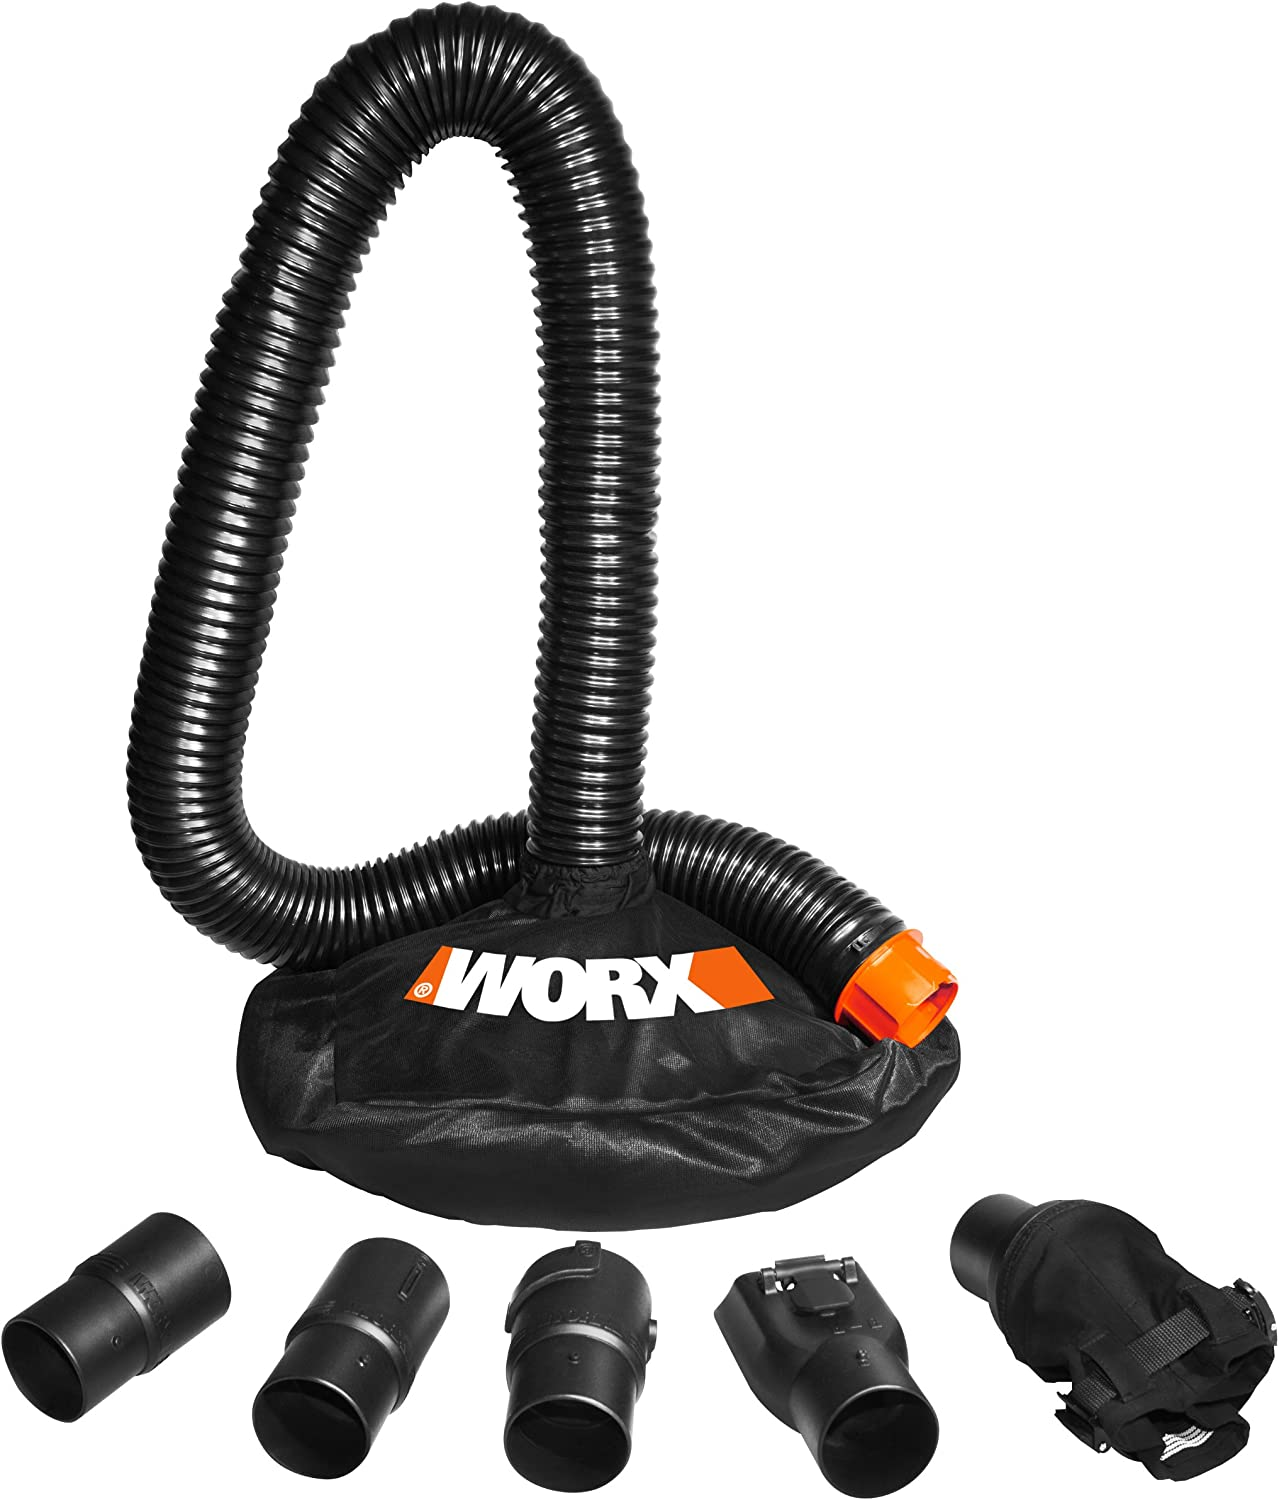 WORX WA4054.1 LeafPro Universal Fit Leaf Collection System for All Major Blower/Vac Brands